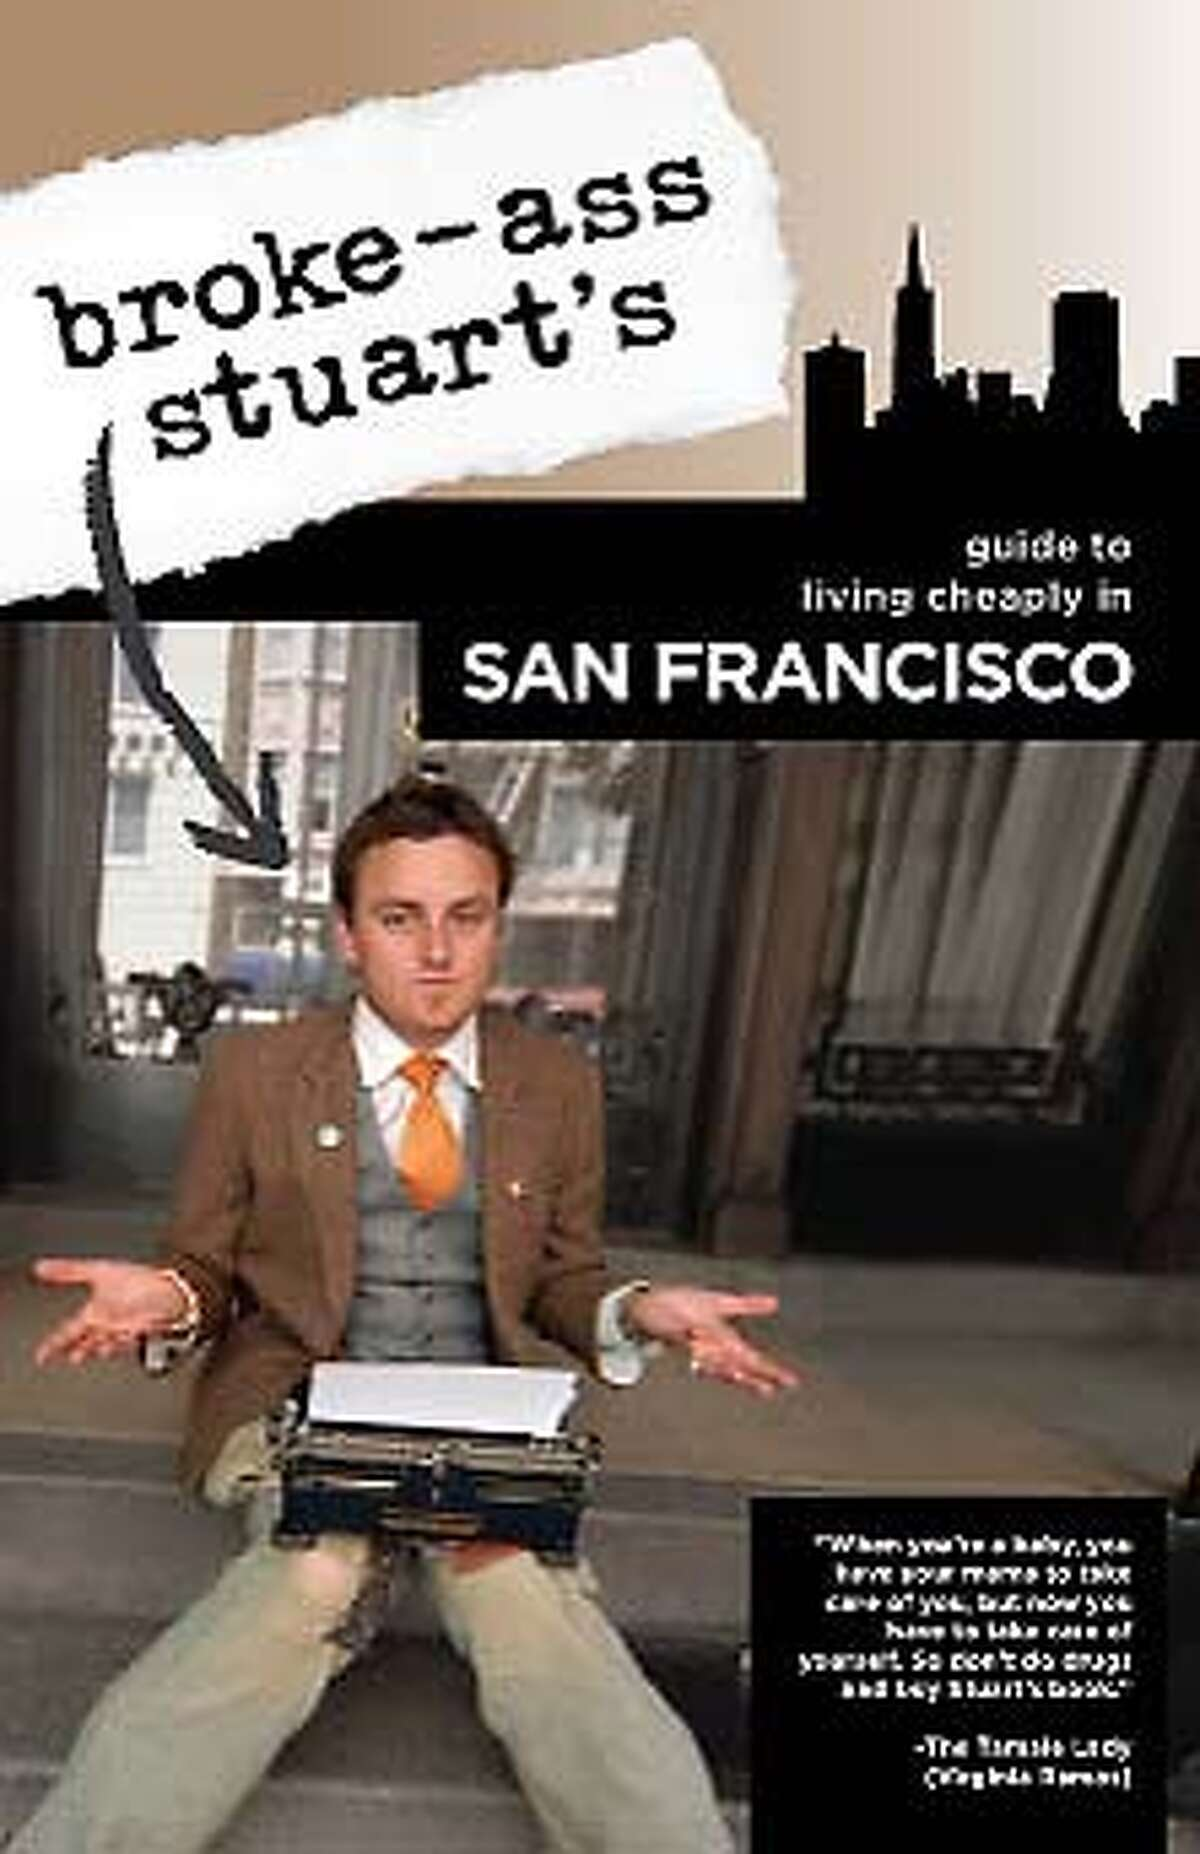 Broke-Ass Stuart's Guide to Living Cheaply in San Francisco (Broke-Ass Stuart's Guide to Living Cheap) (Paperback) by Broke-Ass Stuart (Author)